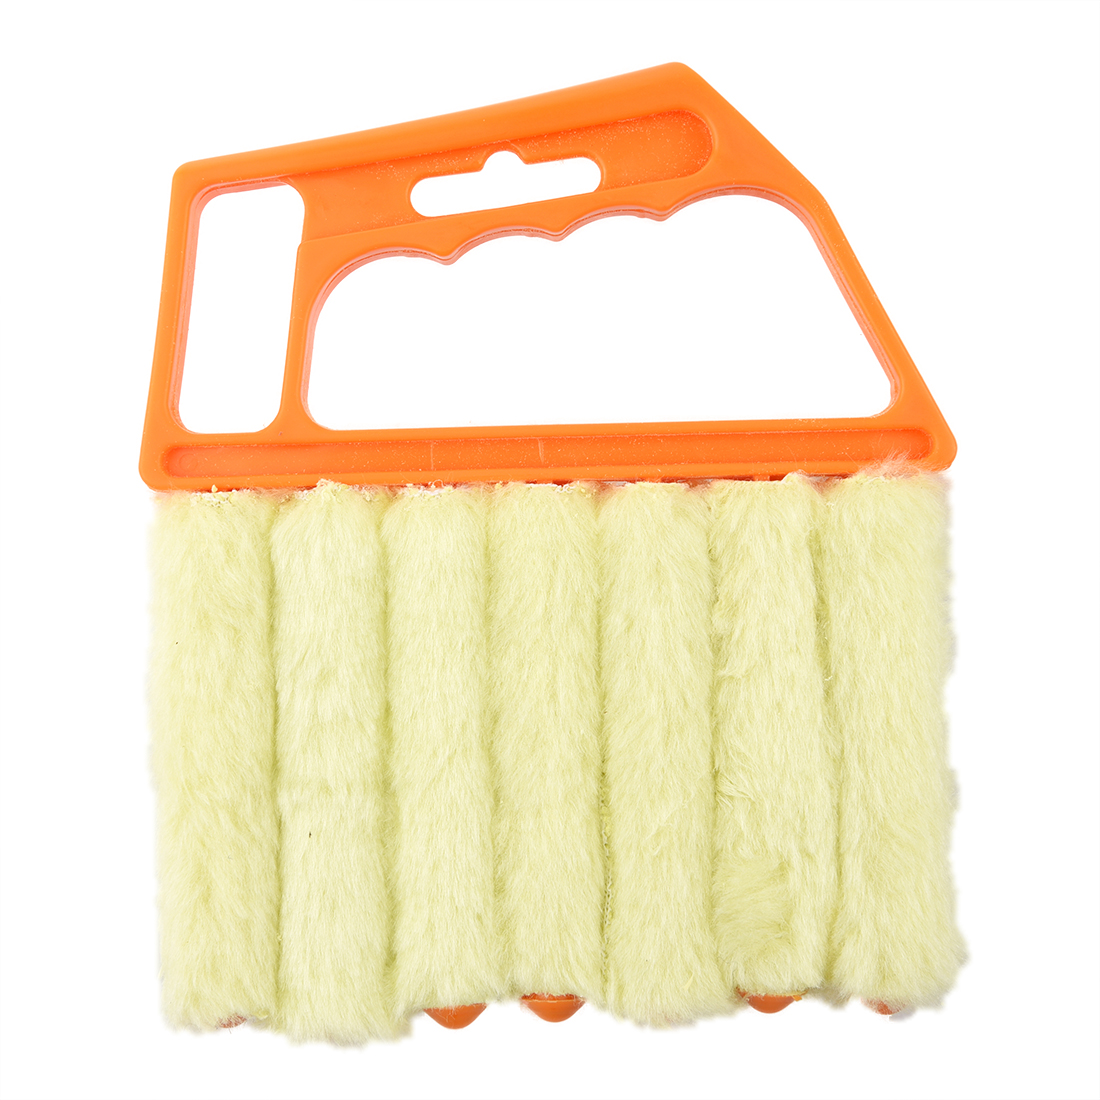 Details about Microfibre Venetian Blind Brush Window Air Conditioner Duster Dirt Cleaner K8H3